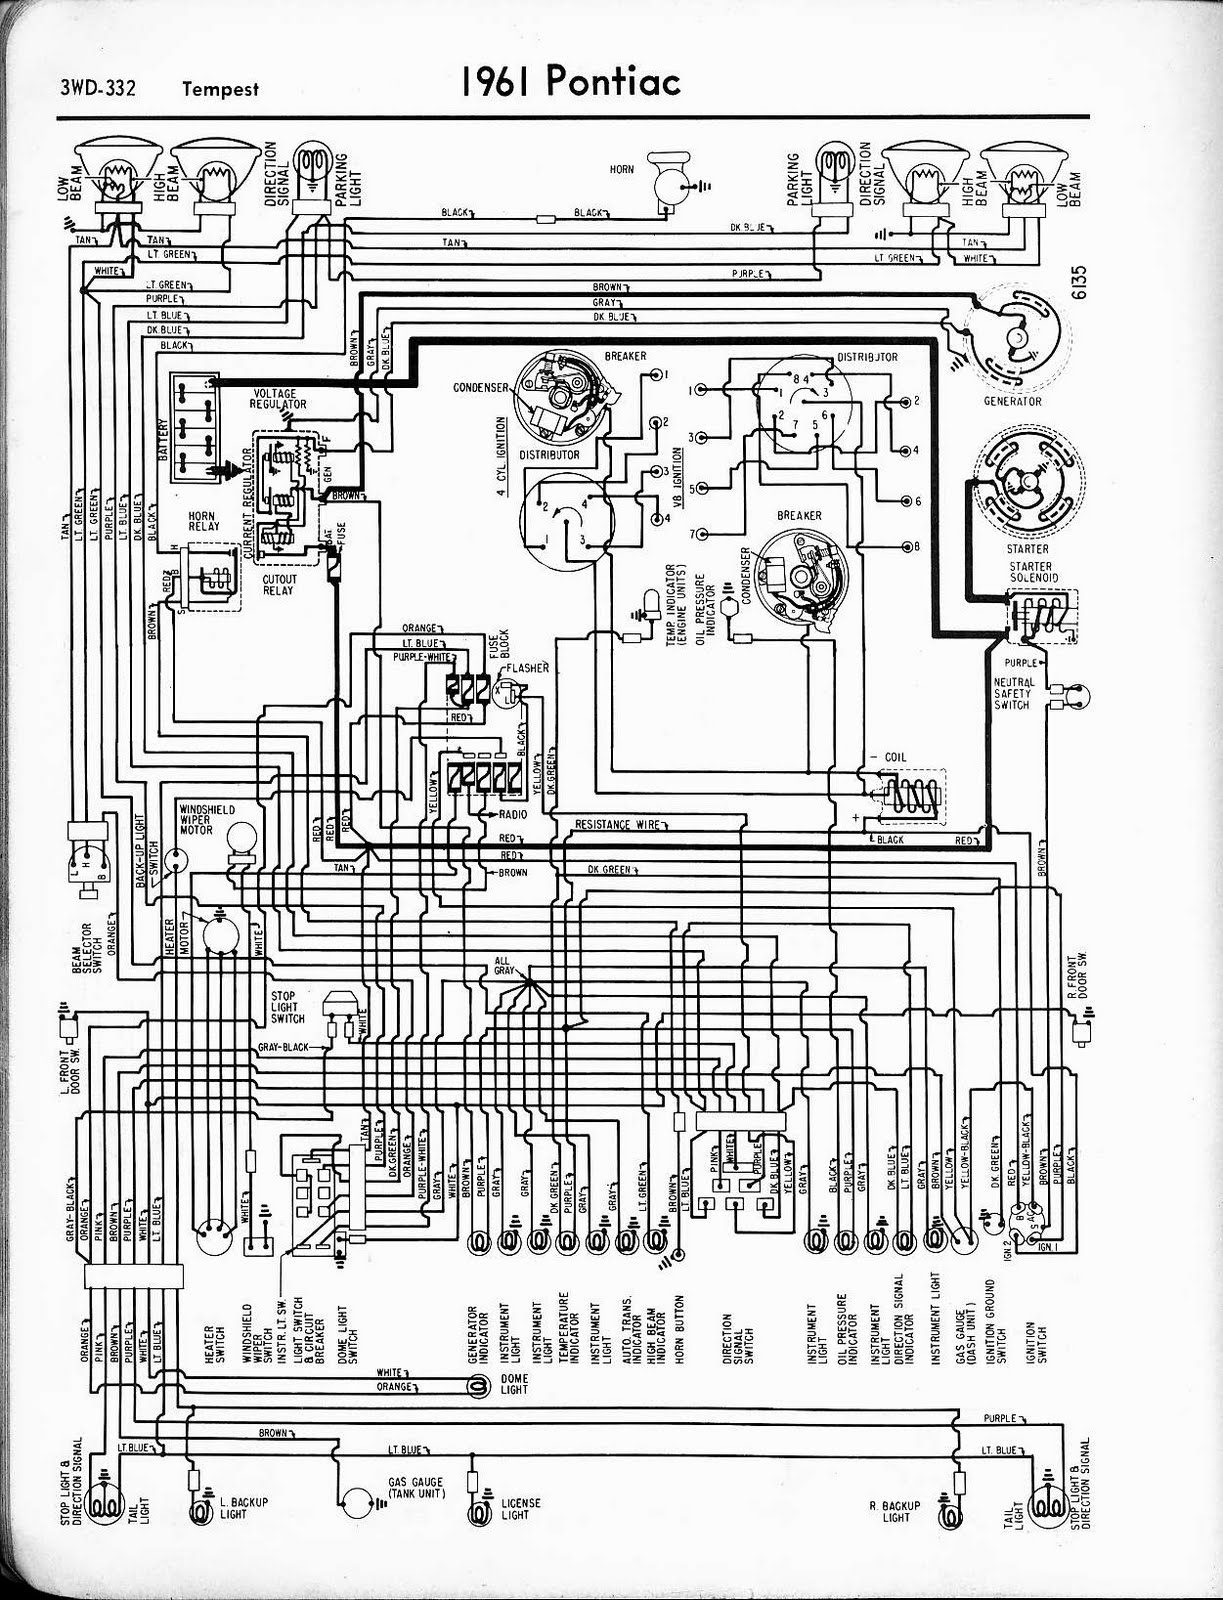 [SCHEMATICS_4HG]  DIAGRAM] 56 Pontiac Wiring Diagram FULL Version HD Quality Wiring Diagram -  UMLDIAGRAMS.BLIDETOINE.FR | Btsi Wiring Harness Diagram Color Order |  | umldiagrams.blidetoine.fr